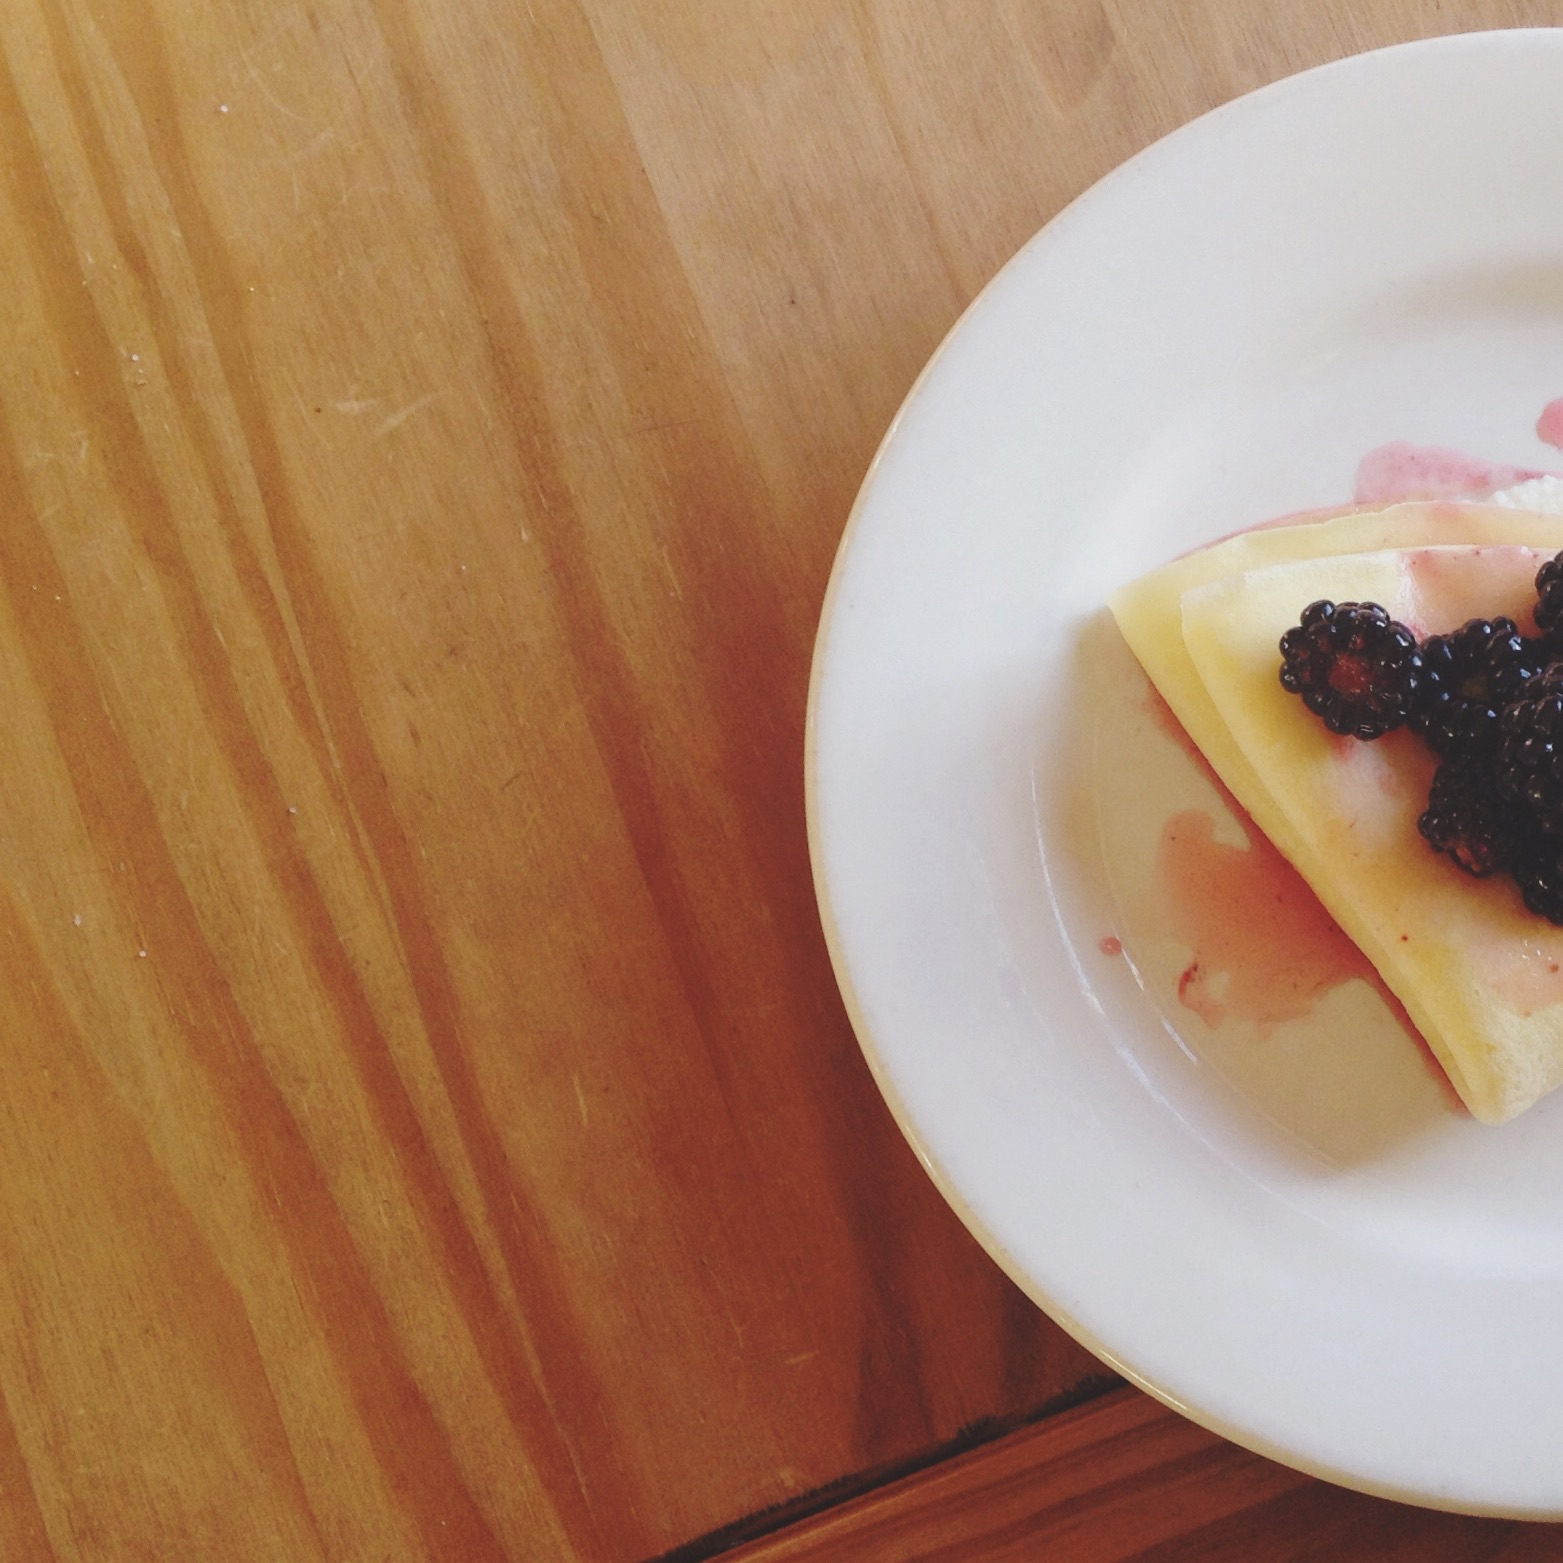 Ricotta Filled Crepes with a Lemon Blackberry Topping – www.thedanareneeway.com